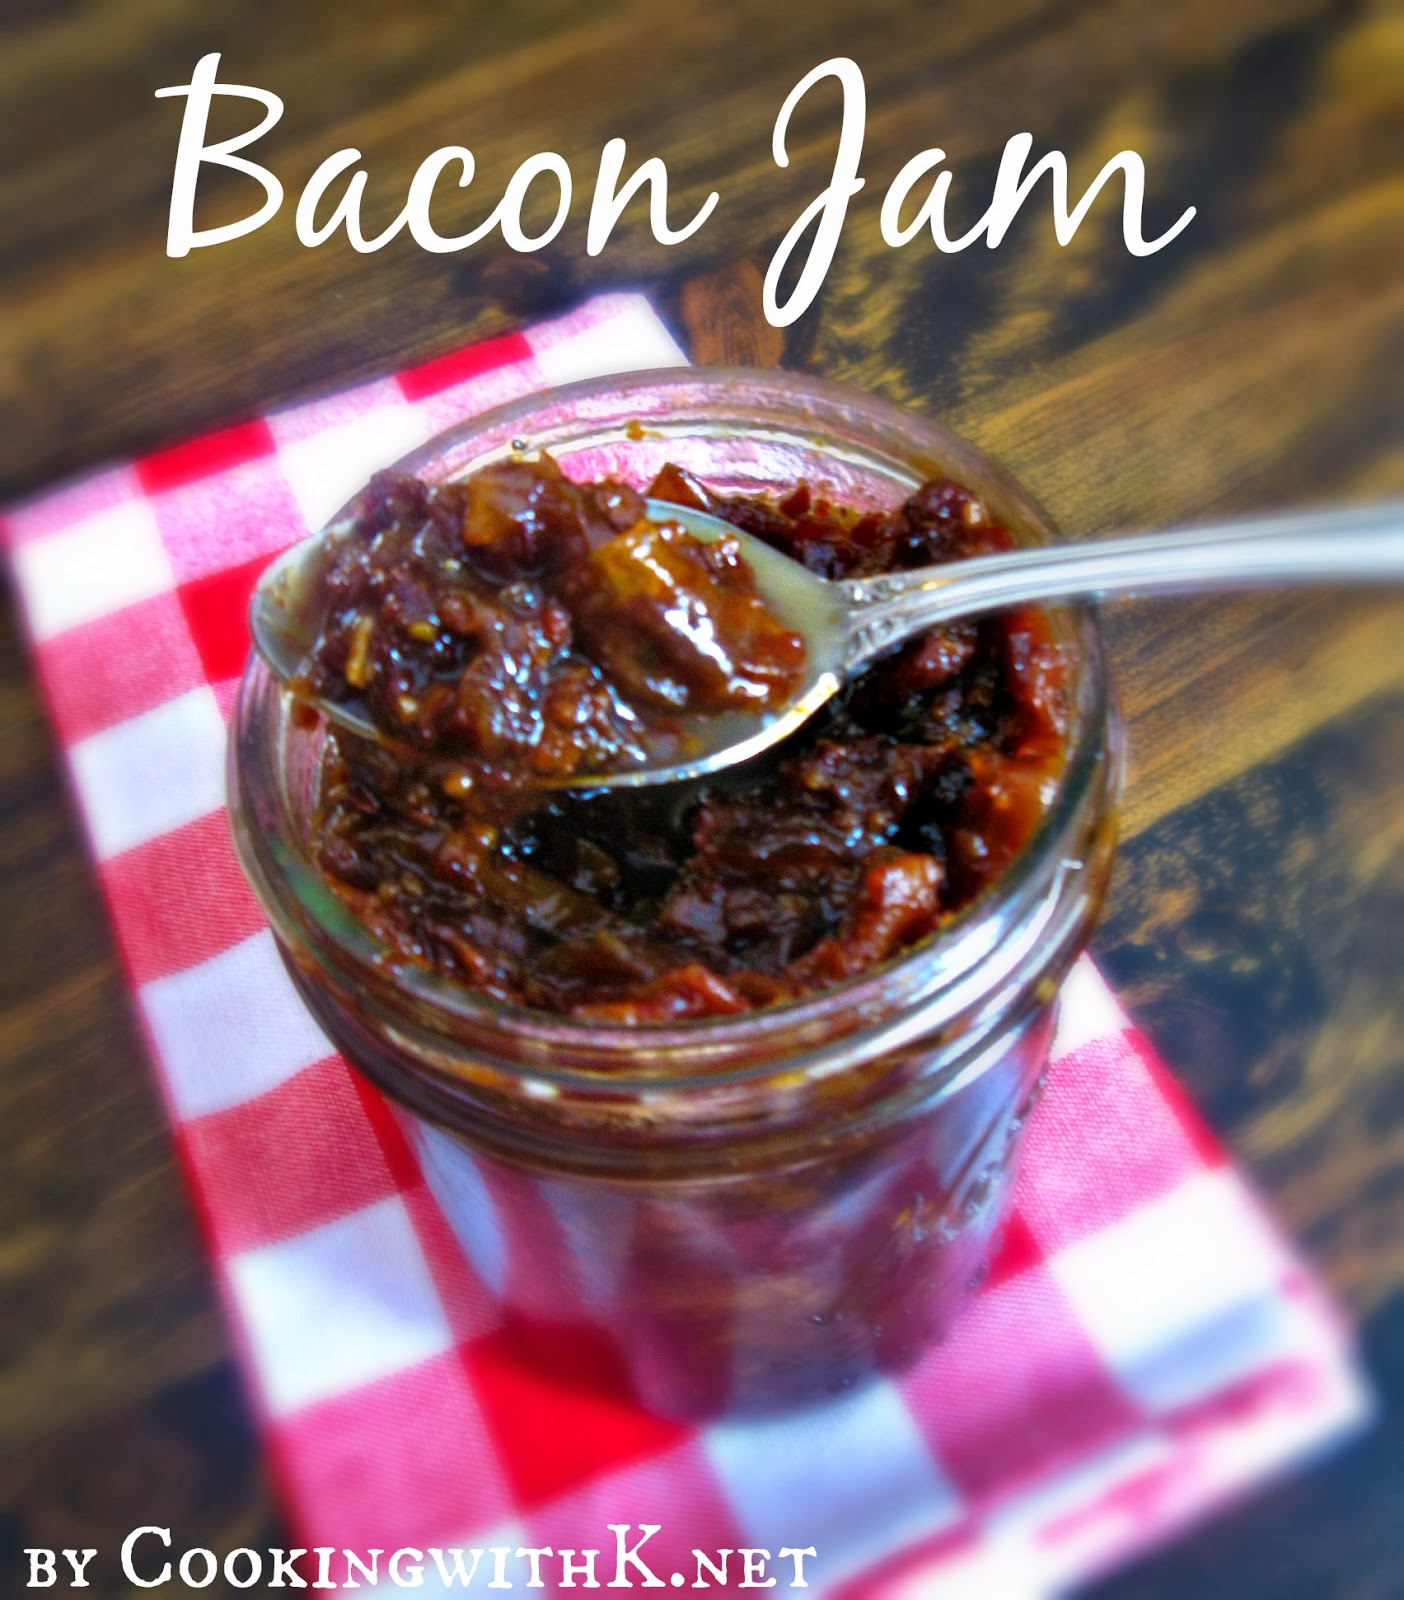 Bacon Jam has been going around the blog world for some time now, and ...